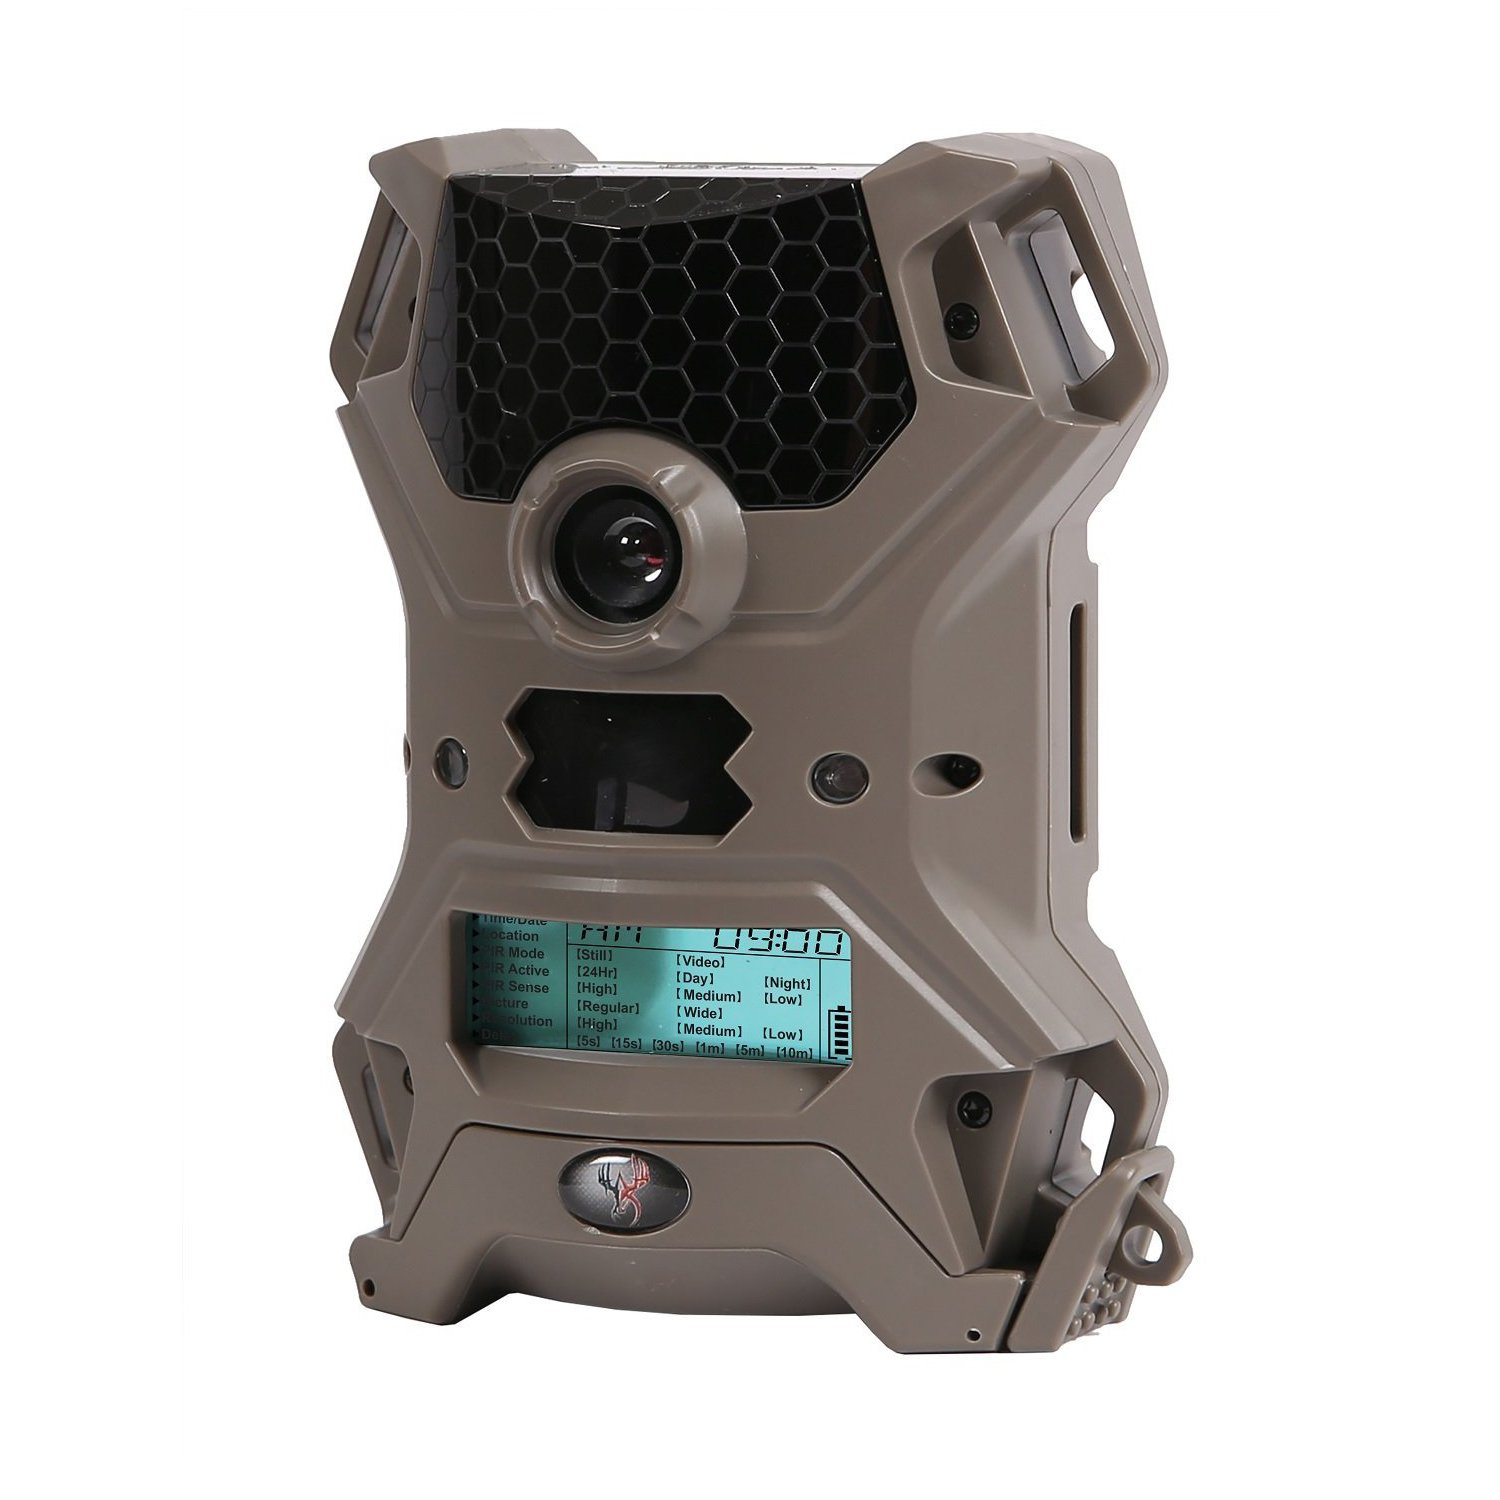 Wildgame Innovations Vision 8 Lightsout 8MP IR Hunting Game Trail Camera | V8B7